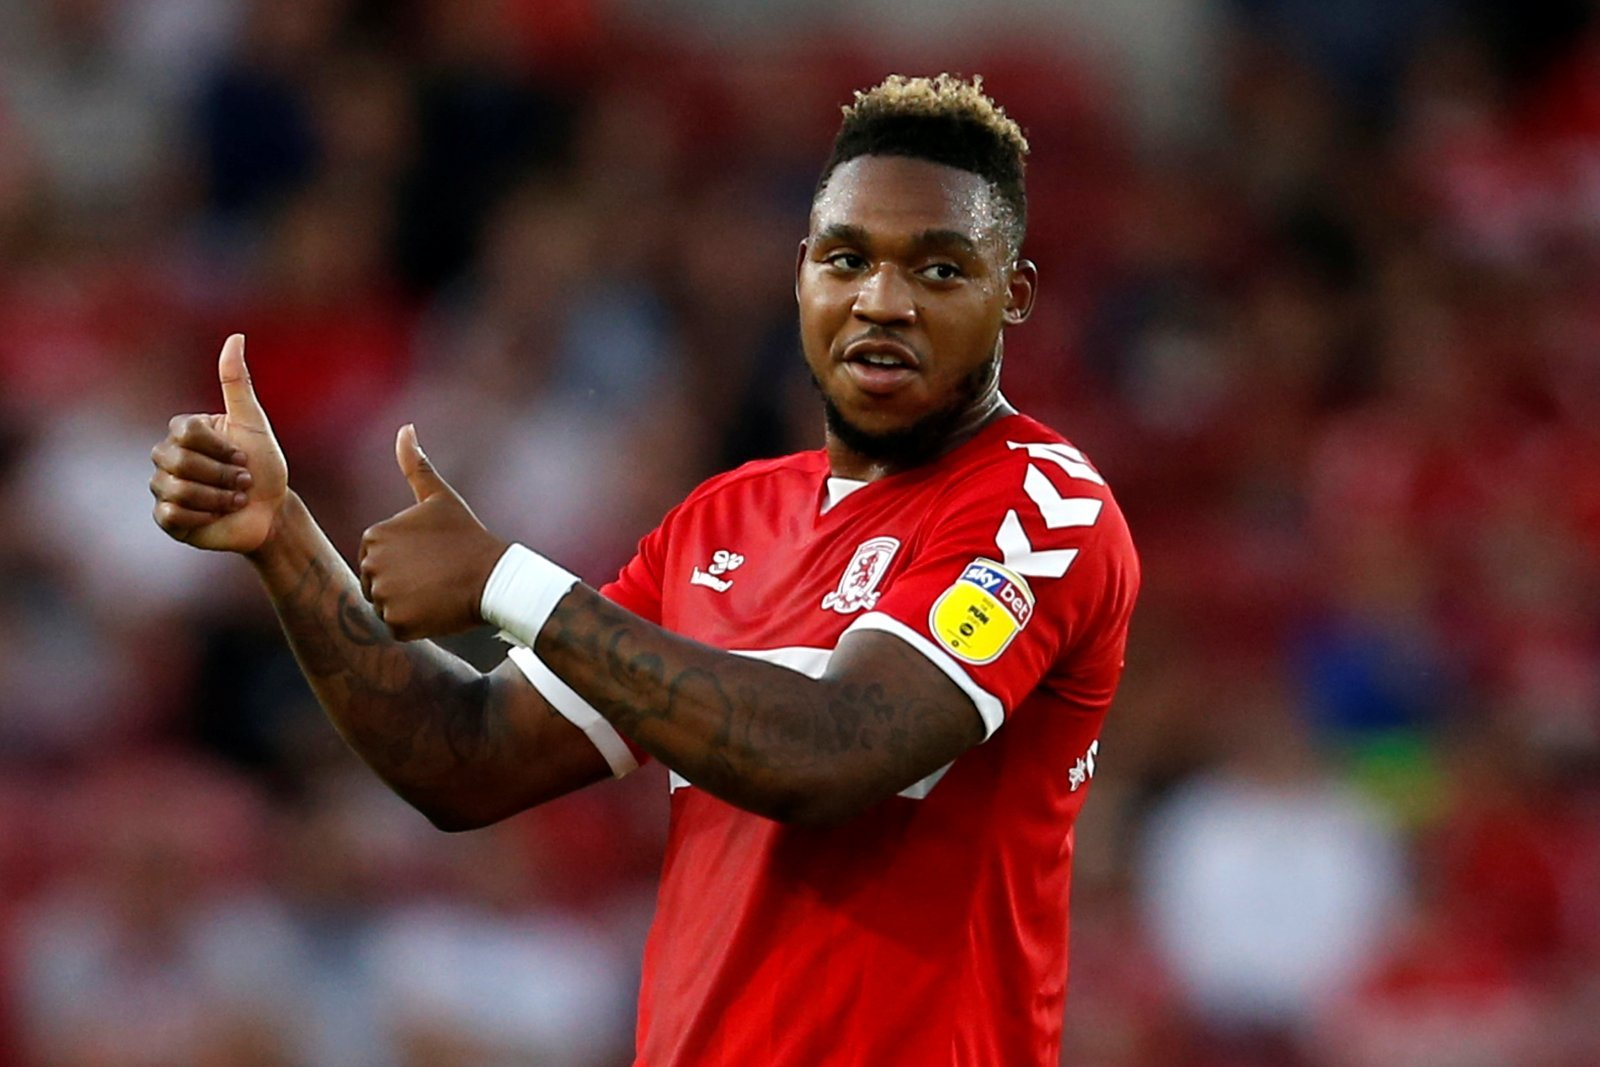 Middlesbrough fans on Twitter appreciative of Assombalonga's tireless display versus Leeds